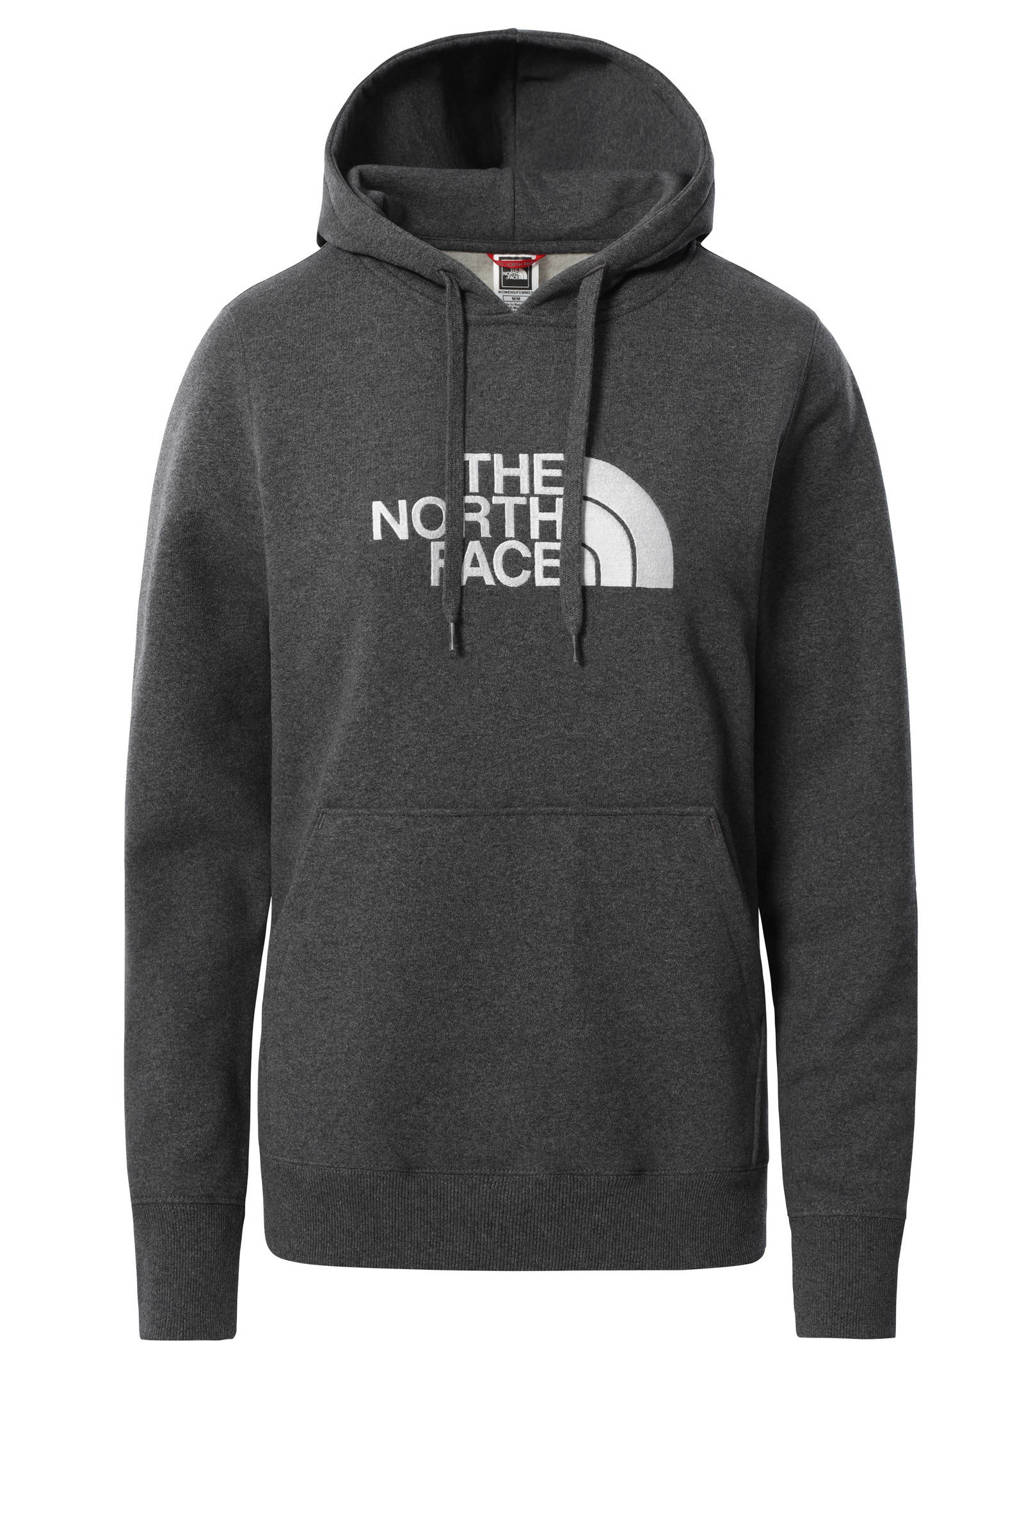 The North Face hoodie Drew Peak donkergrijs, Donkergrijs